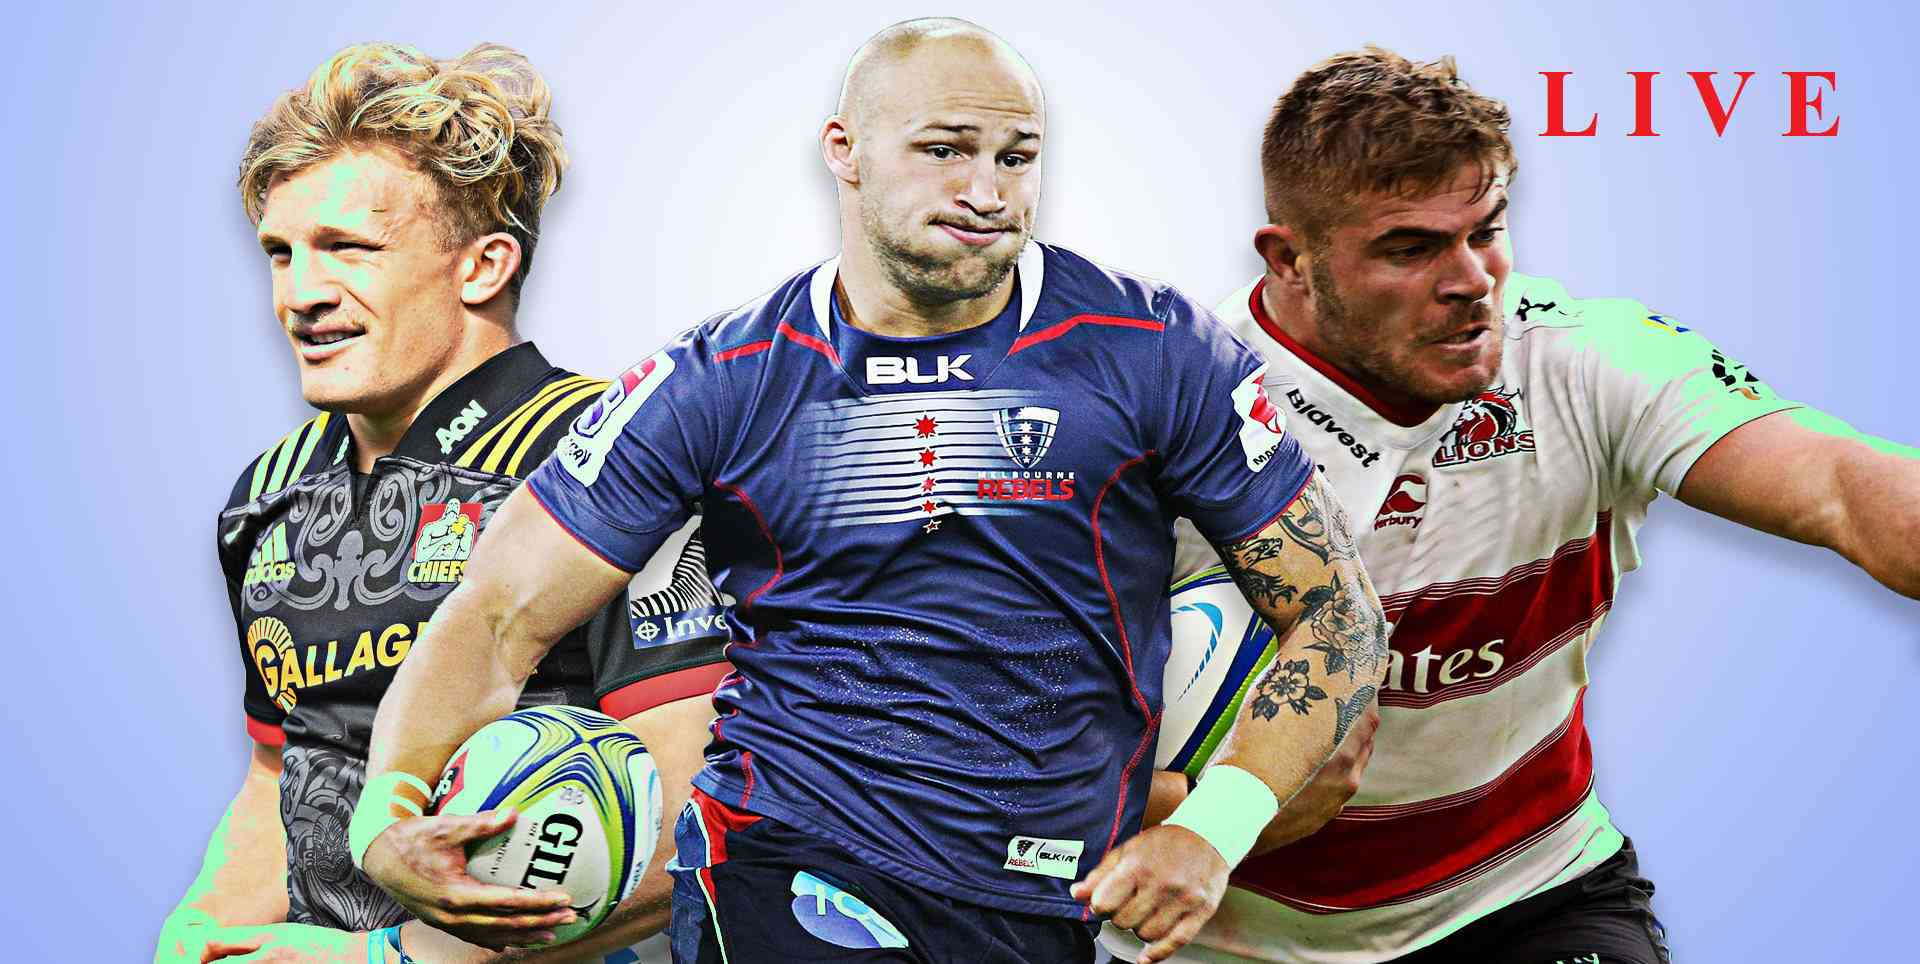 live-toulouse-vs-zebre-rugby-online